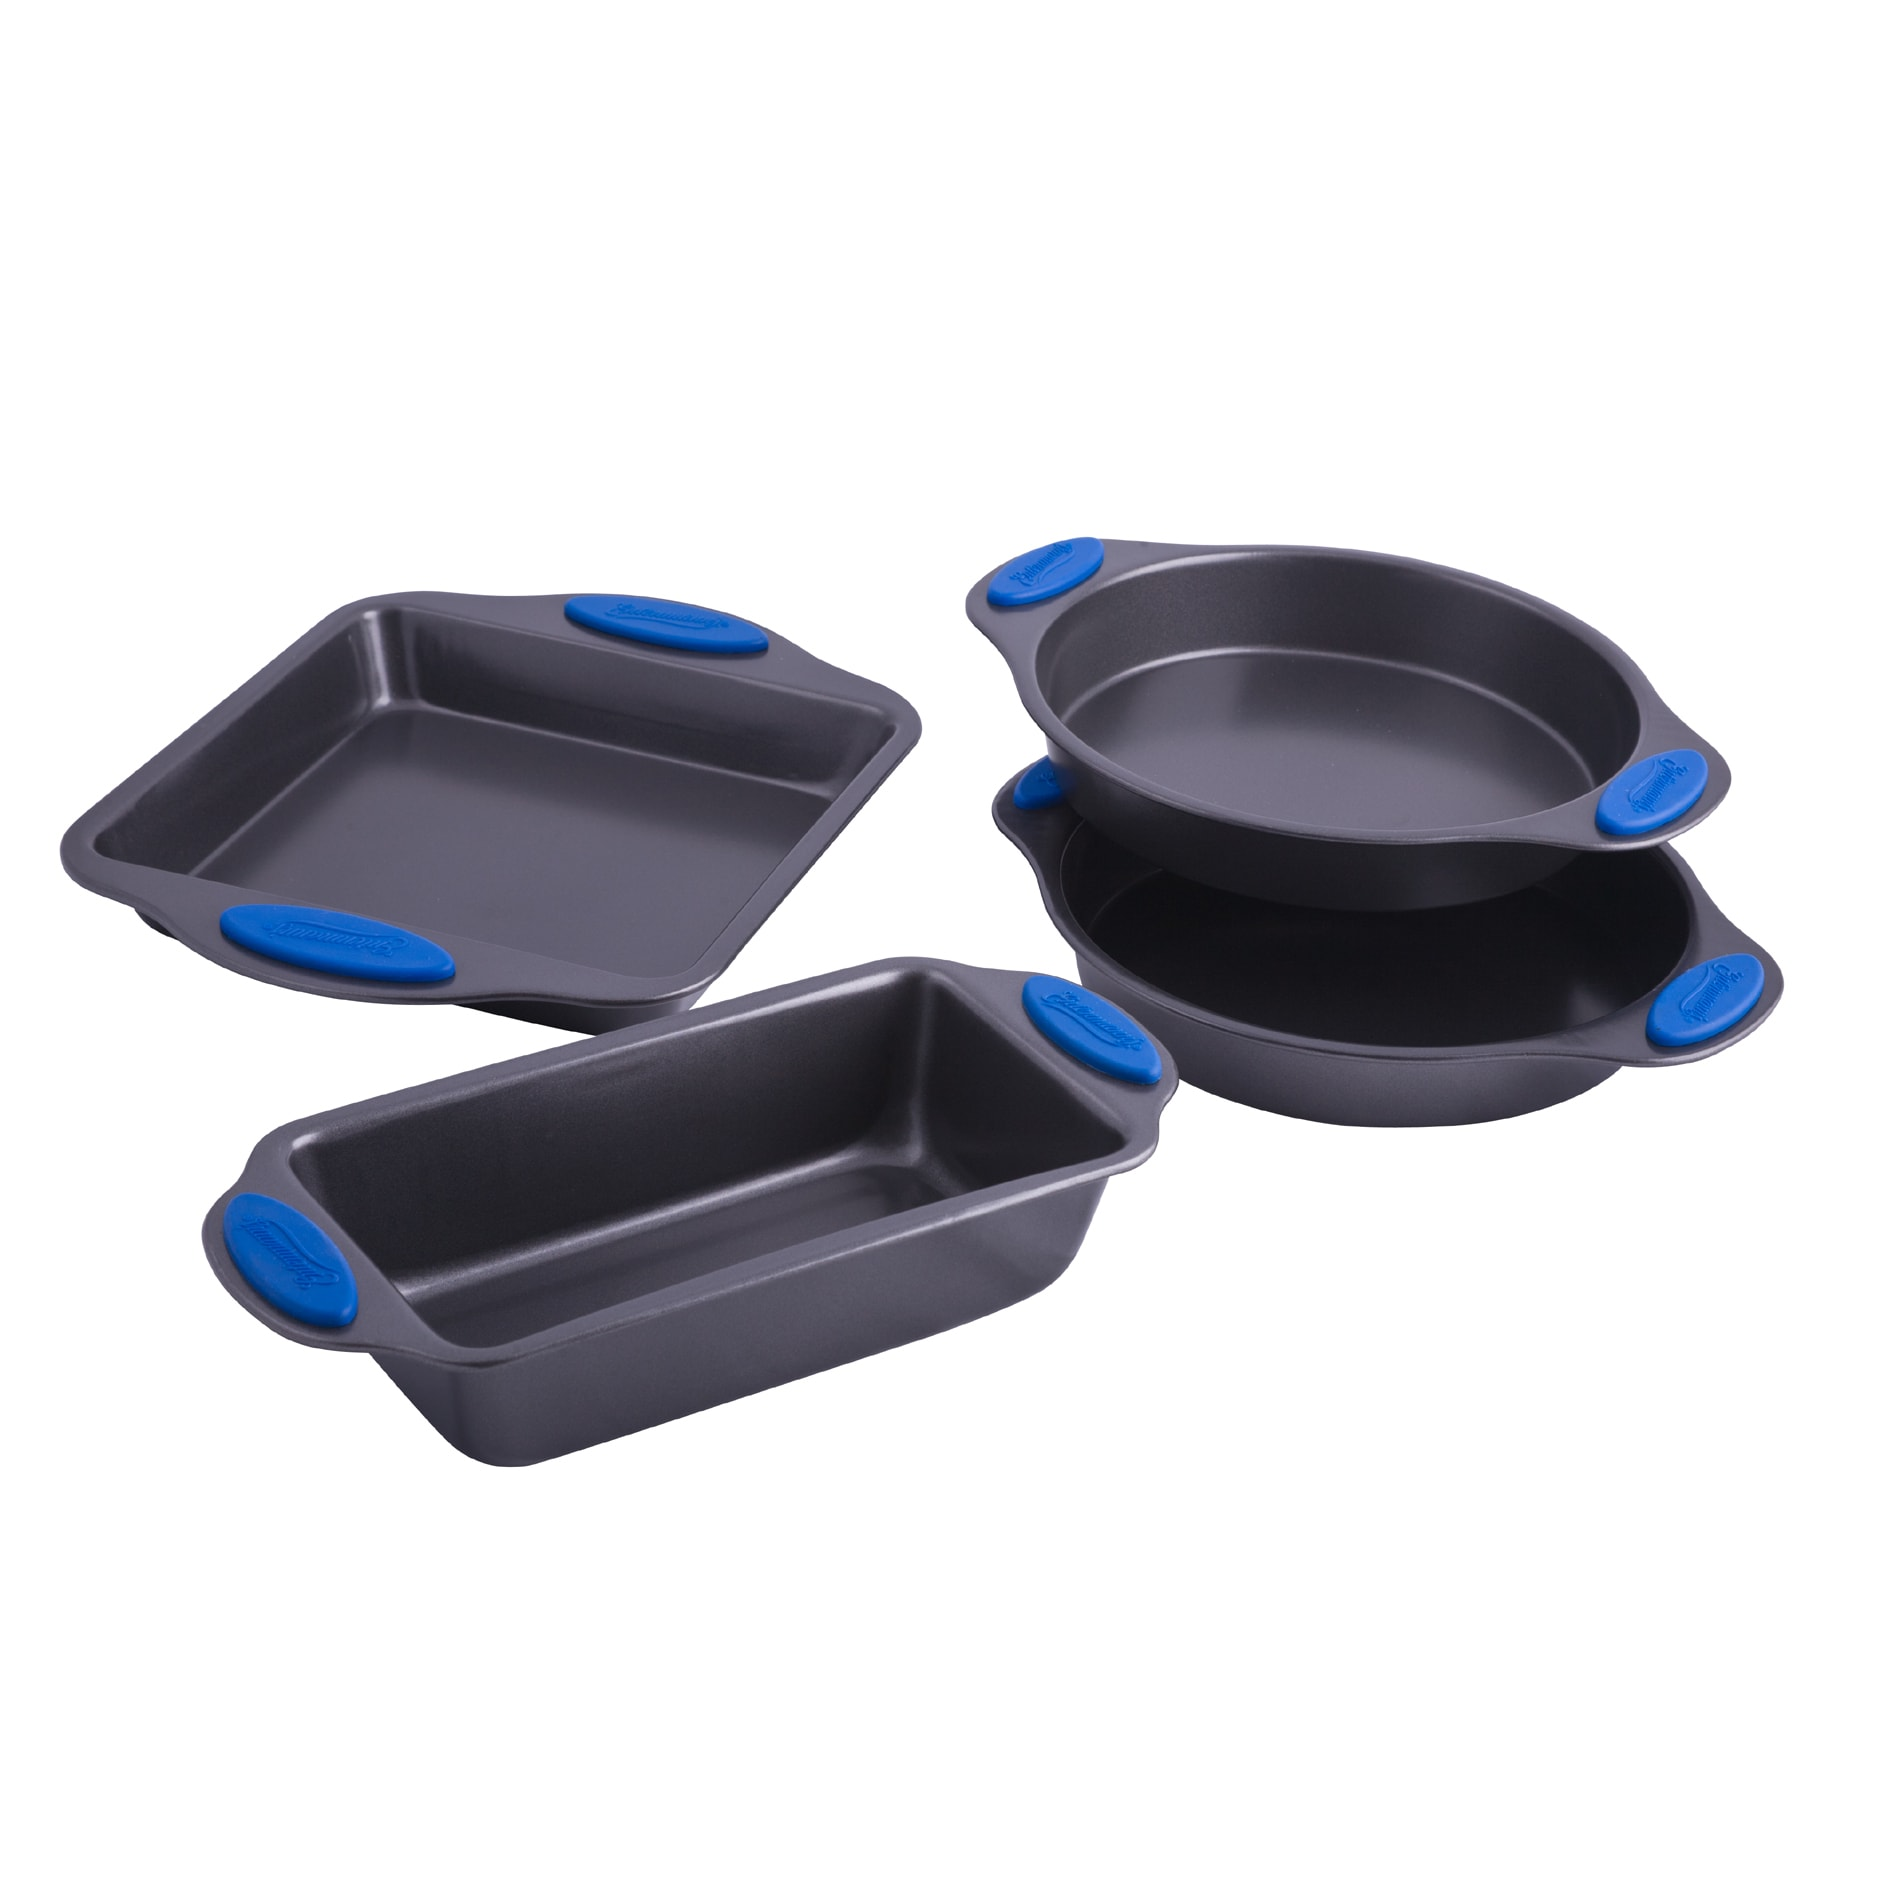 Entenmann's Ultimate 4-piece Bakeware Set